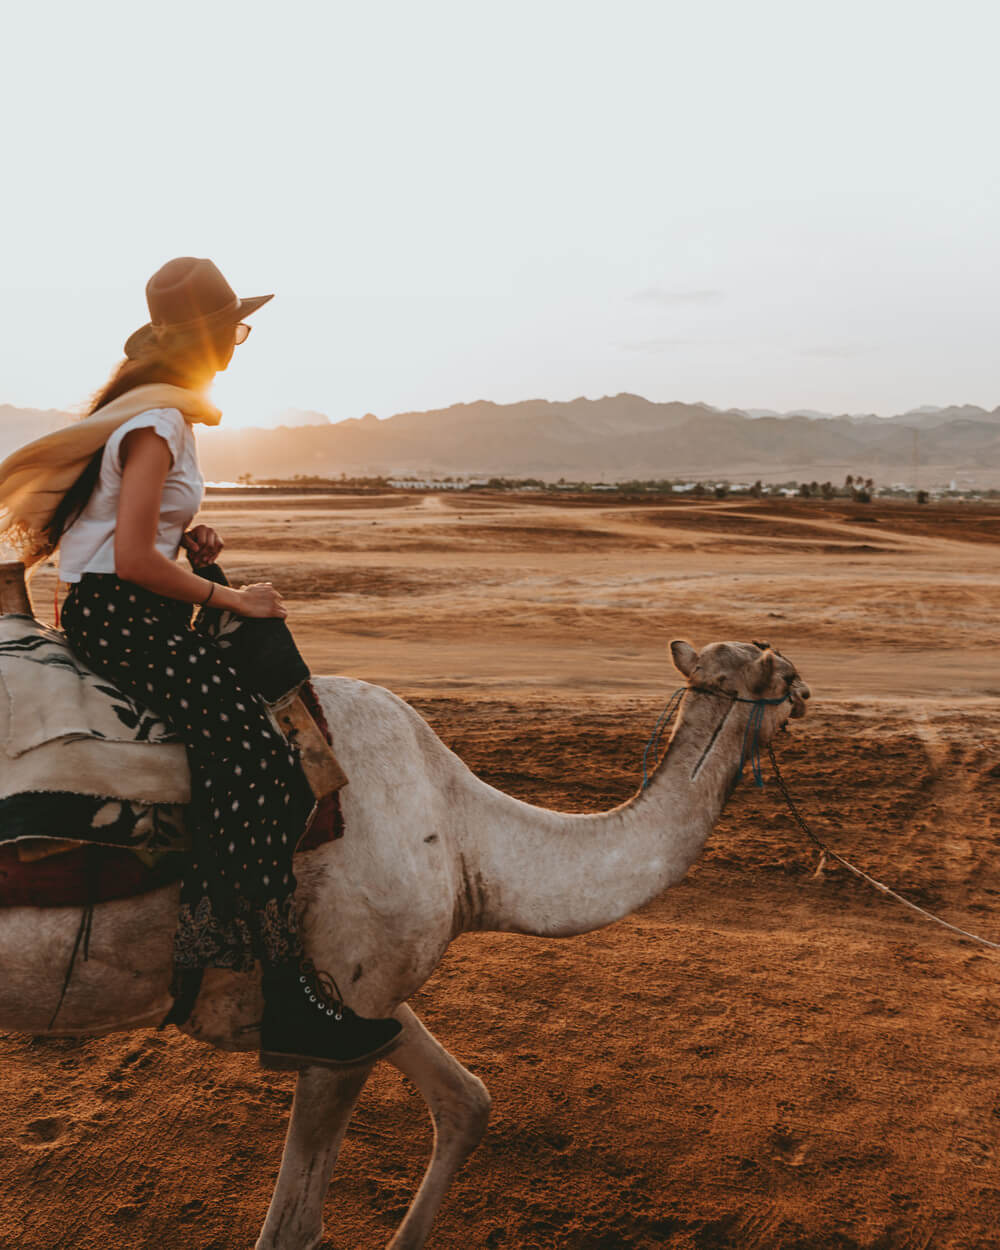 photo of a girl riding a camel. Shot by Jona Grey